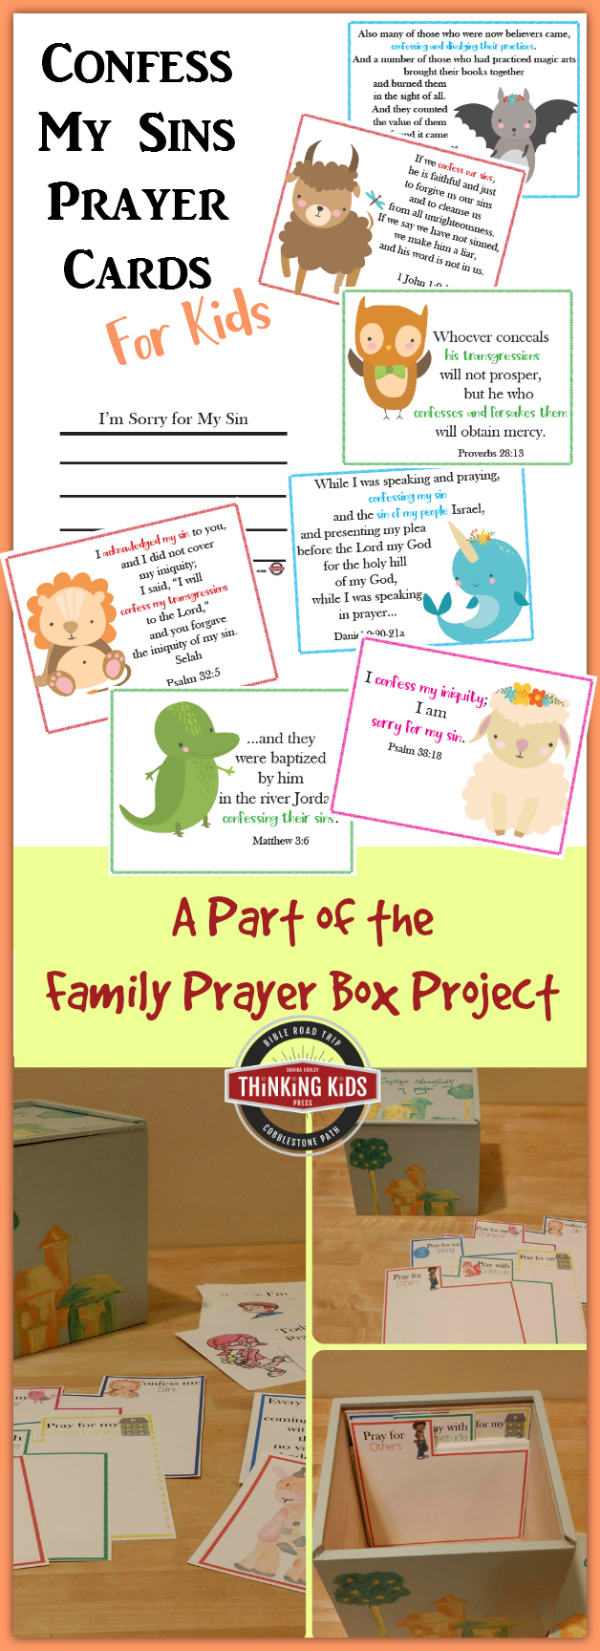 Confess My Sins Prayer Cards for Kids